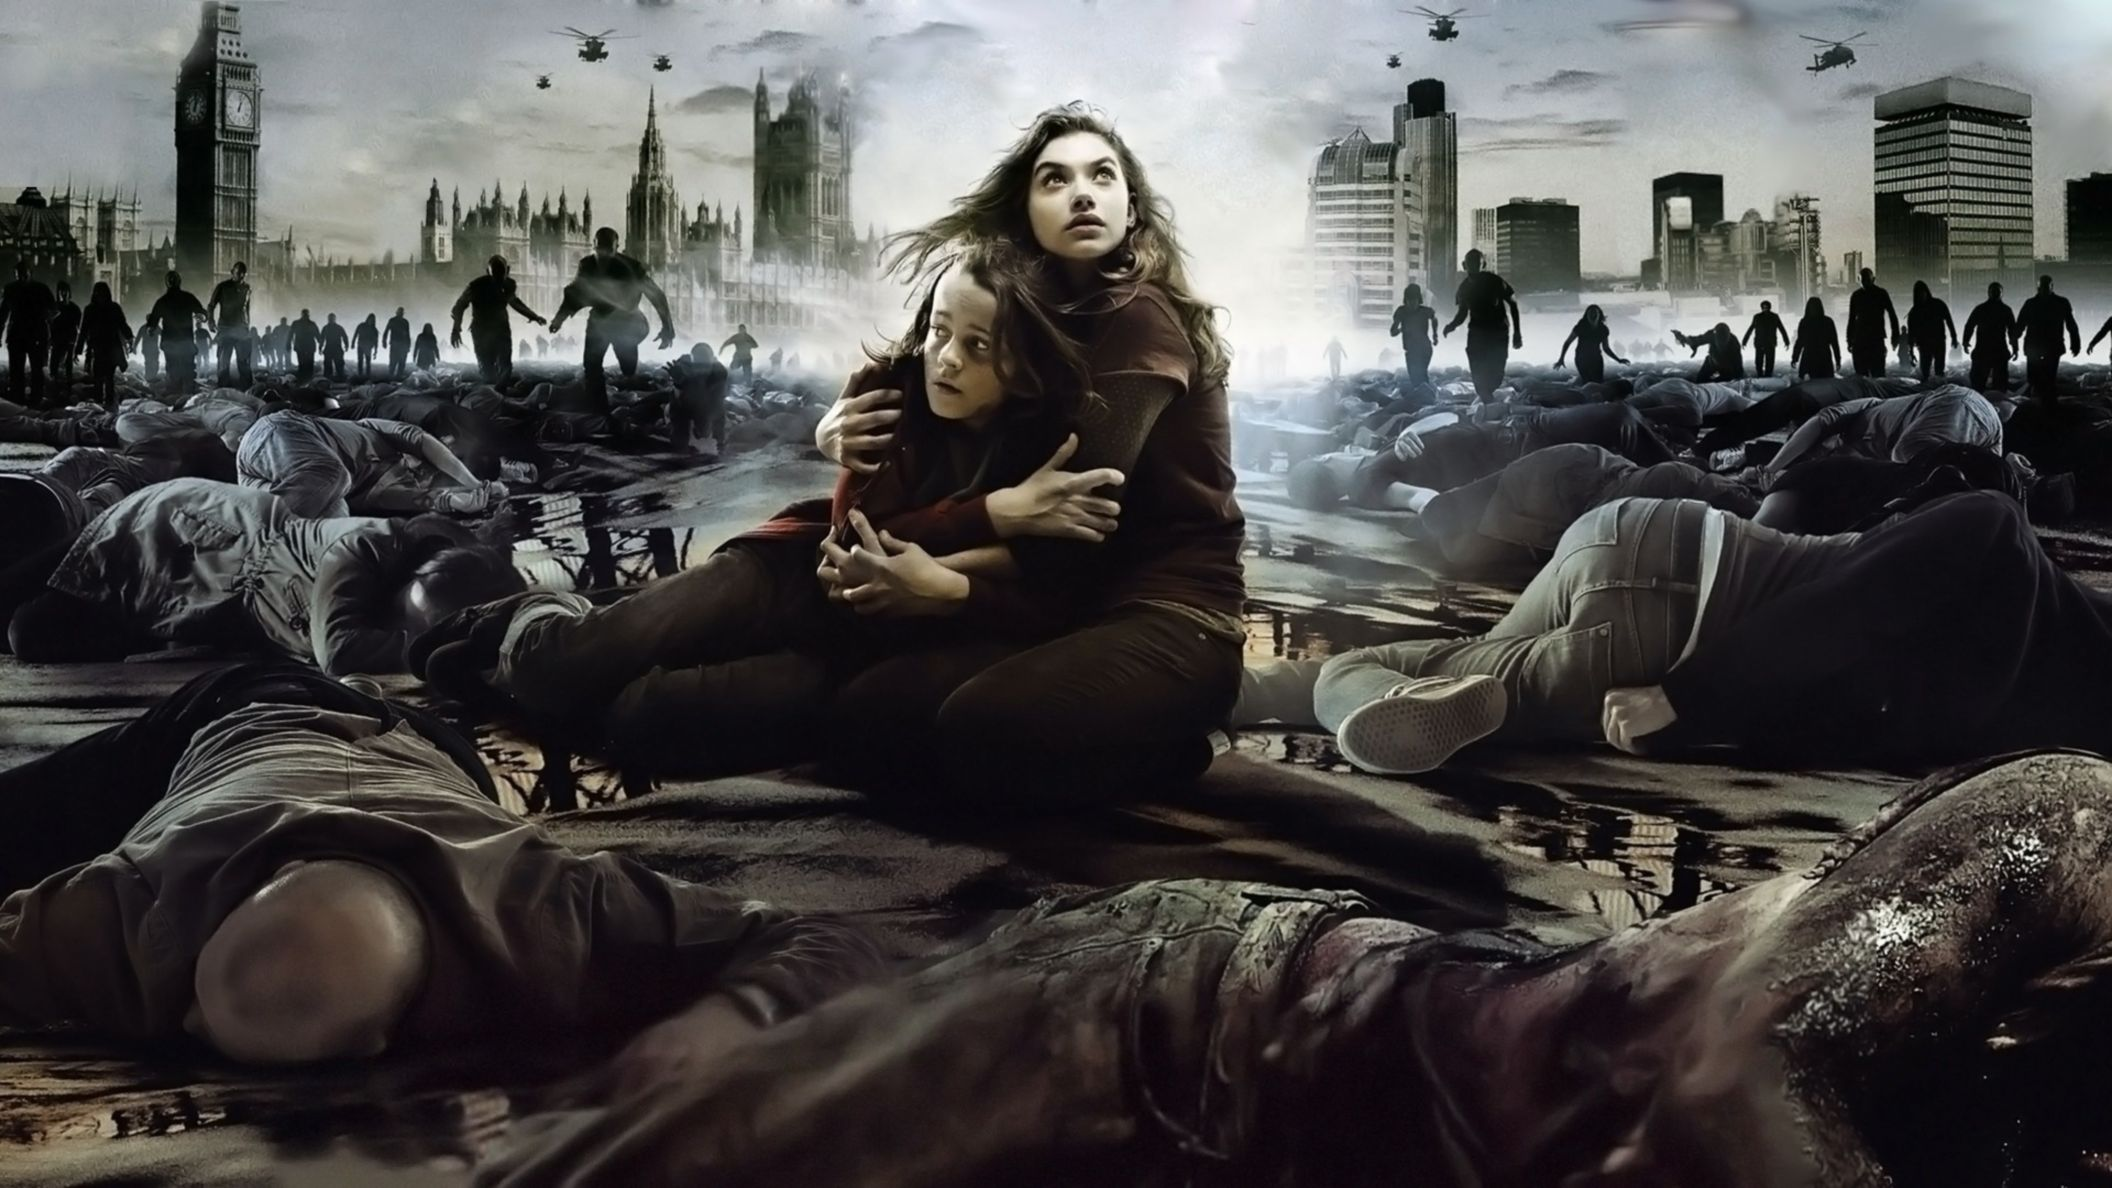 Download free HD 28 Weeks Later HD Wallpaper, image